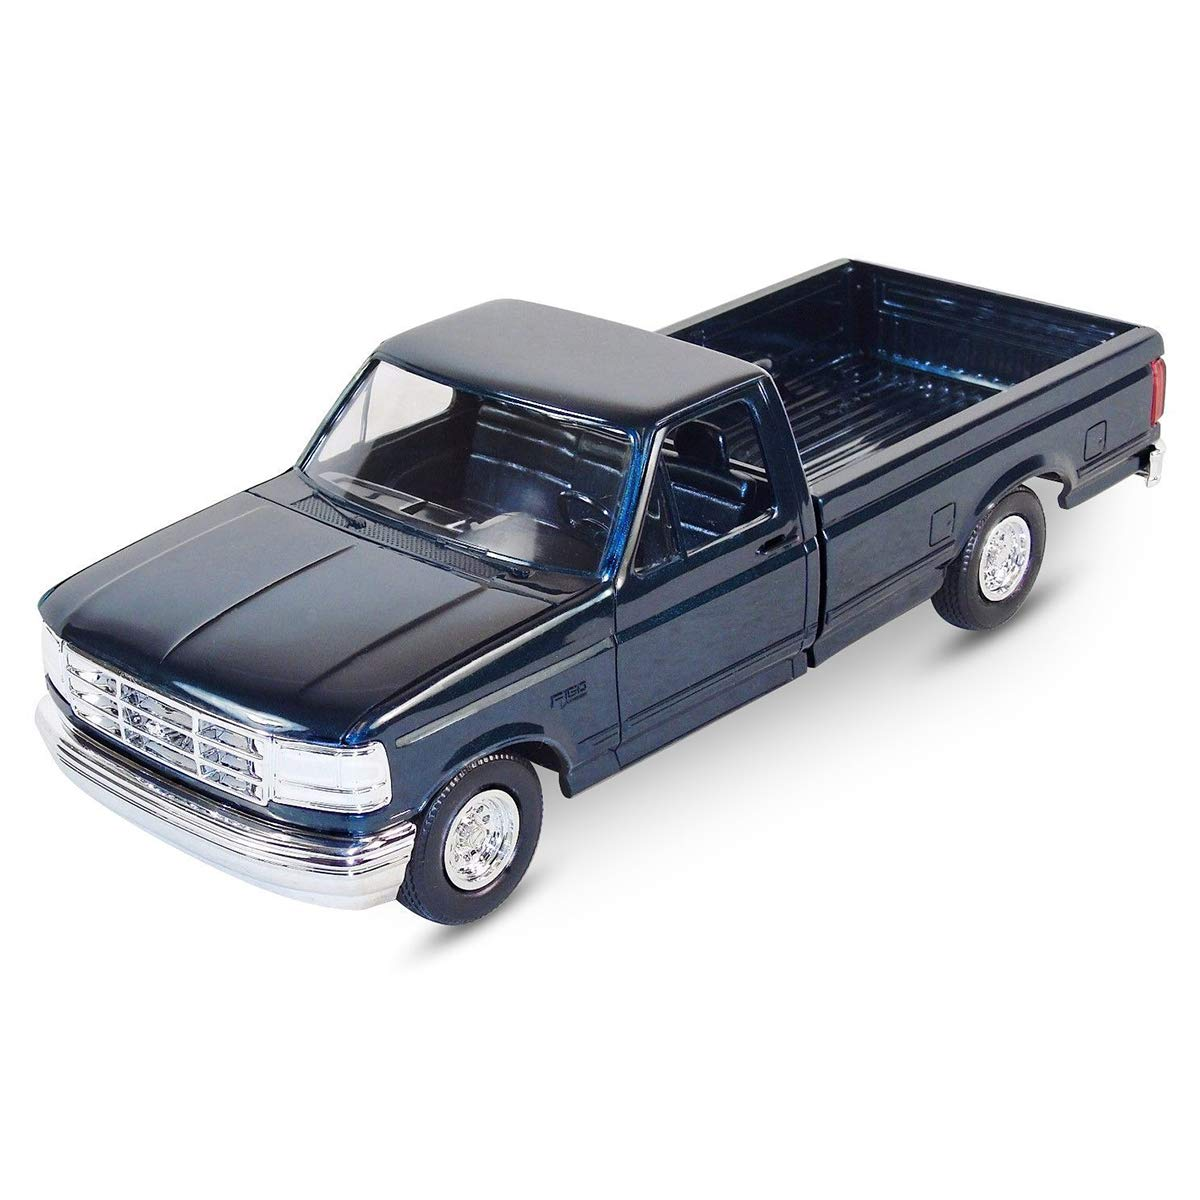 ERTL AMT 1994 Ford F150 Pickup XLT 1 25 Scale Deep Forest Green. Plastic ERTL Promo Collectors Item.